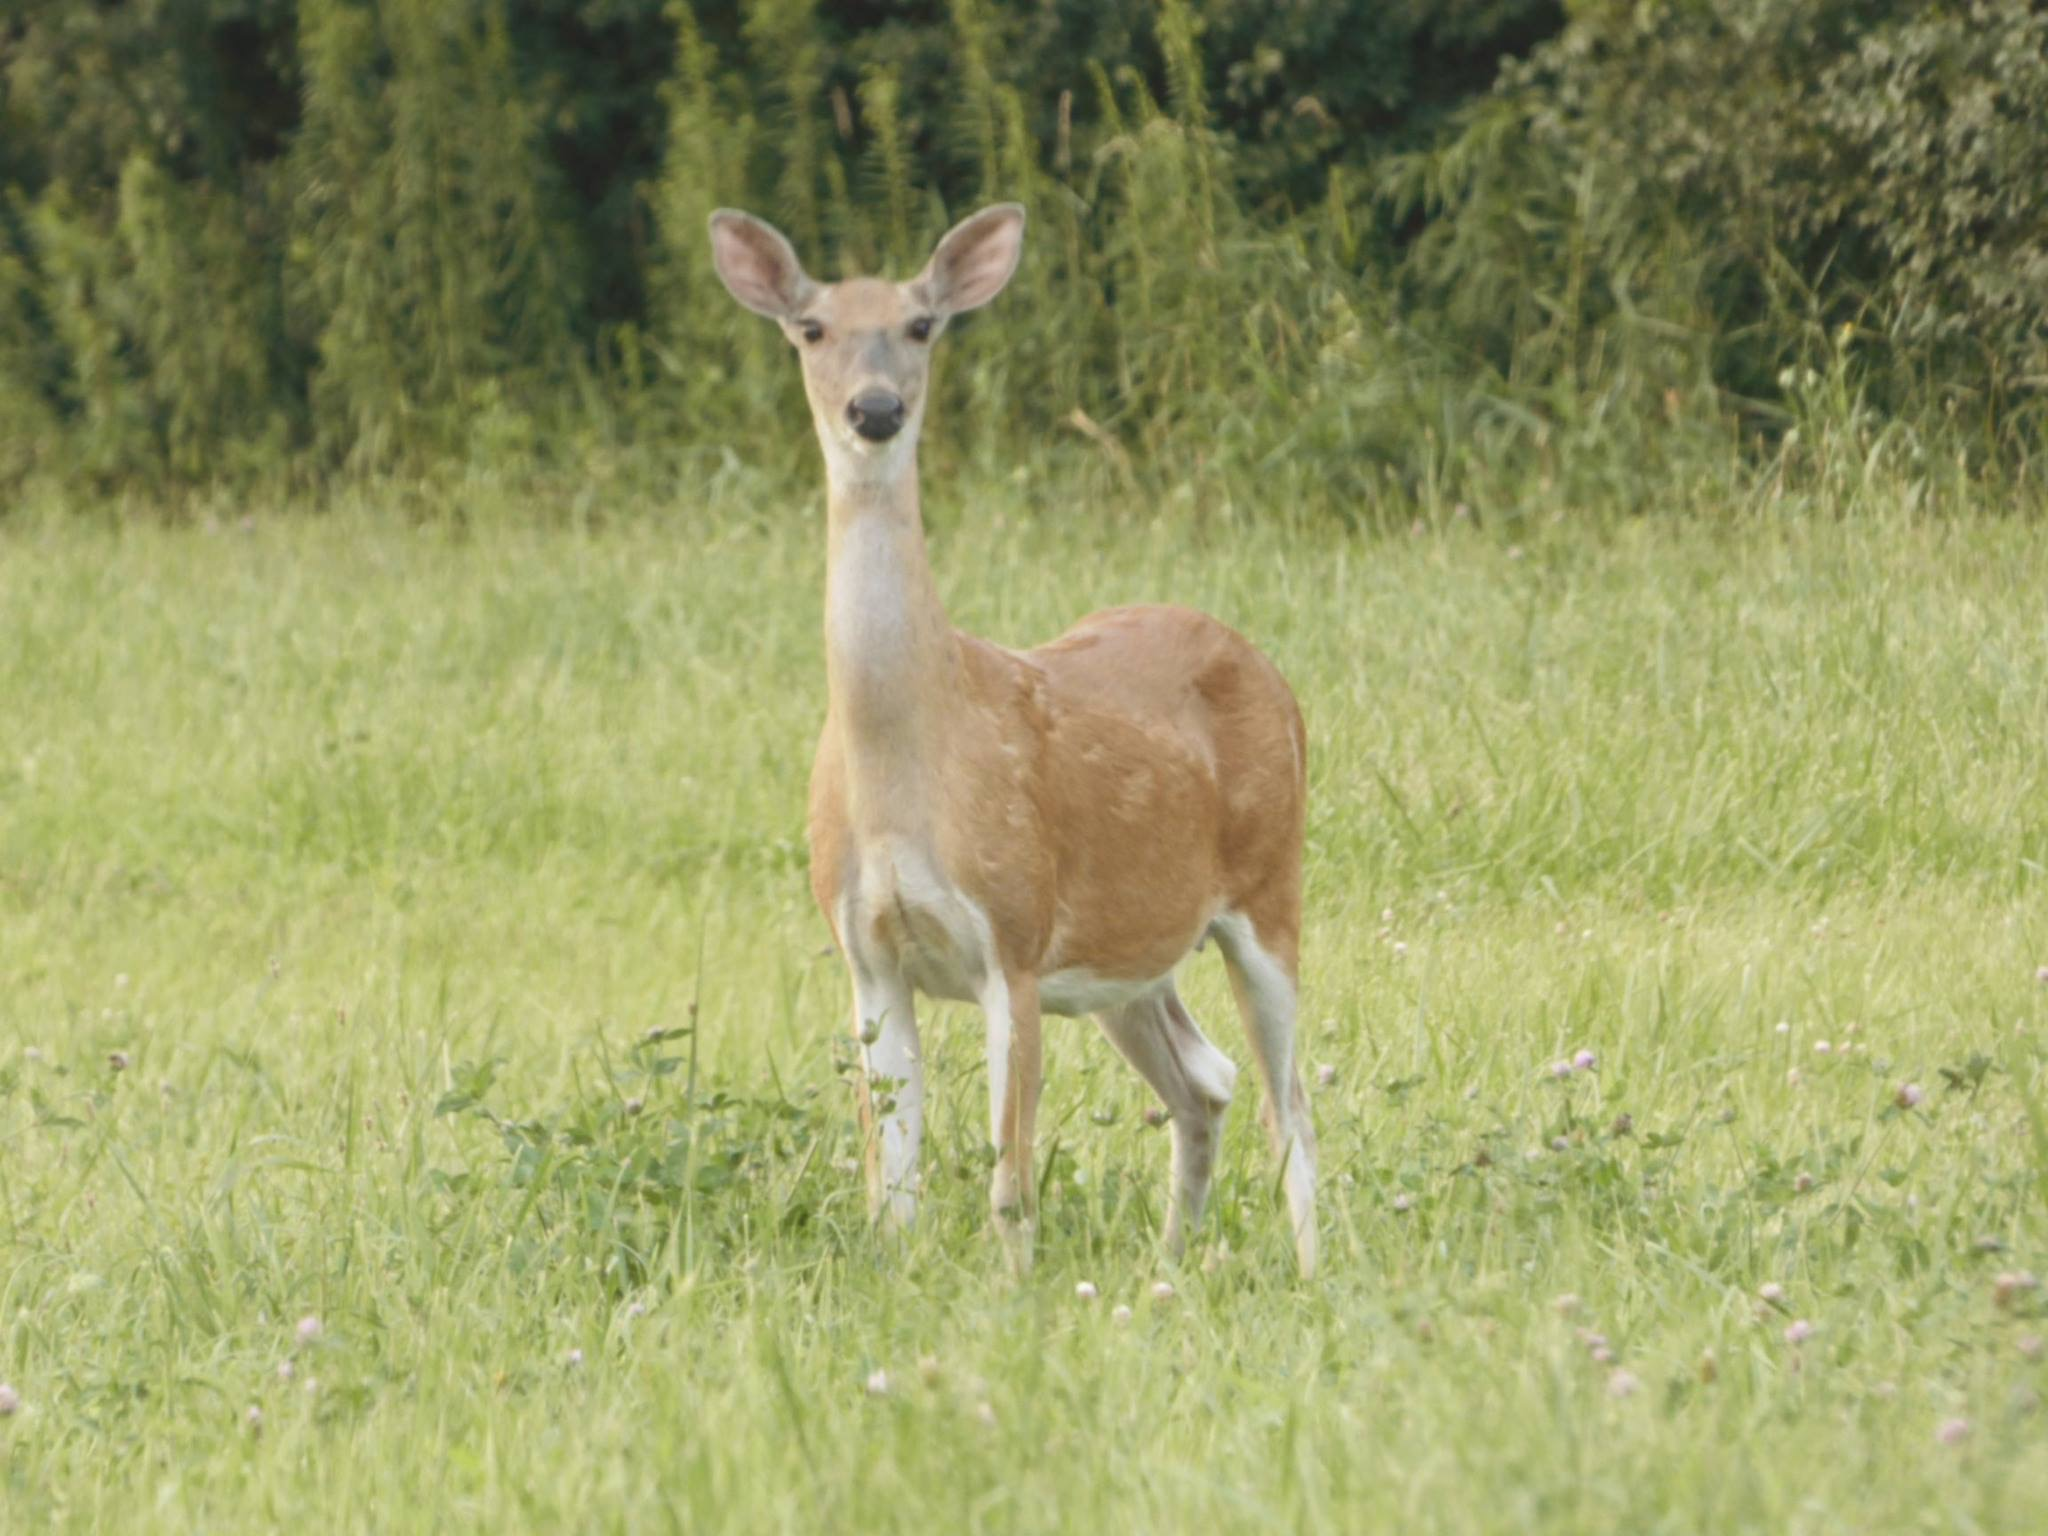 This deer was spotted by B Road. Photo: Amy Scroggins